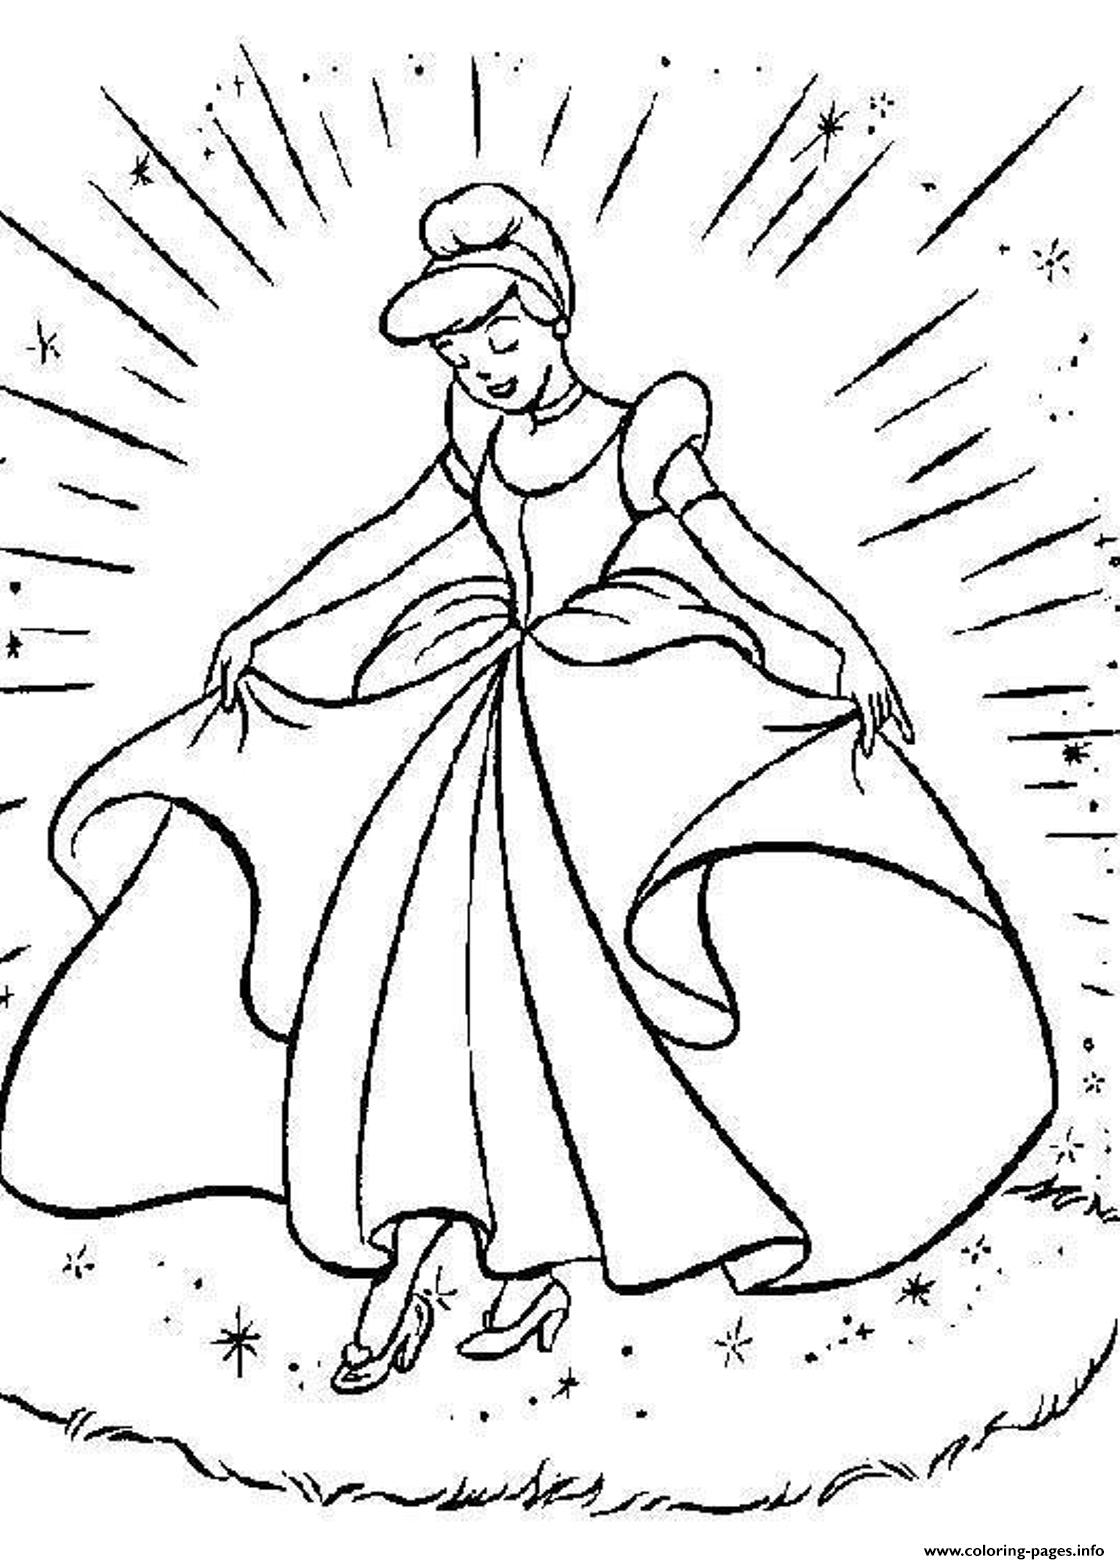 Coloring pages on coloring book info